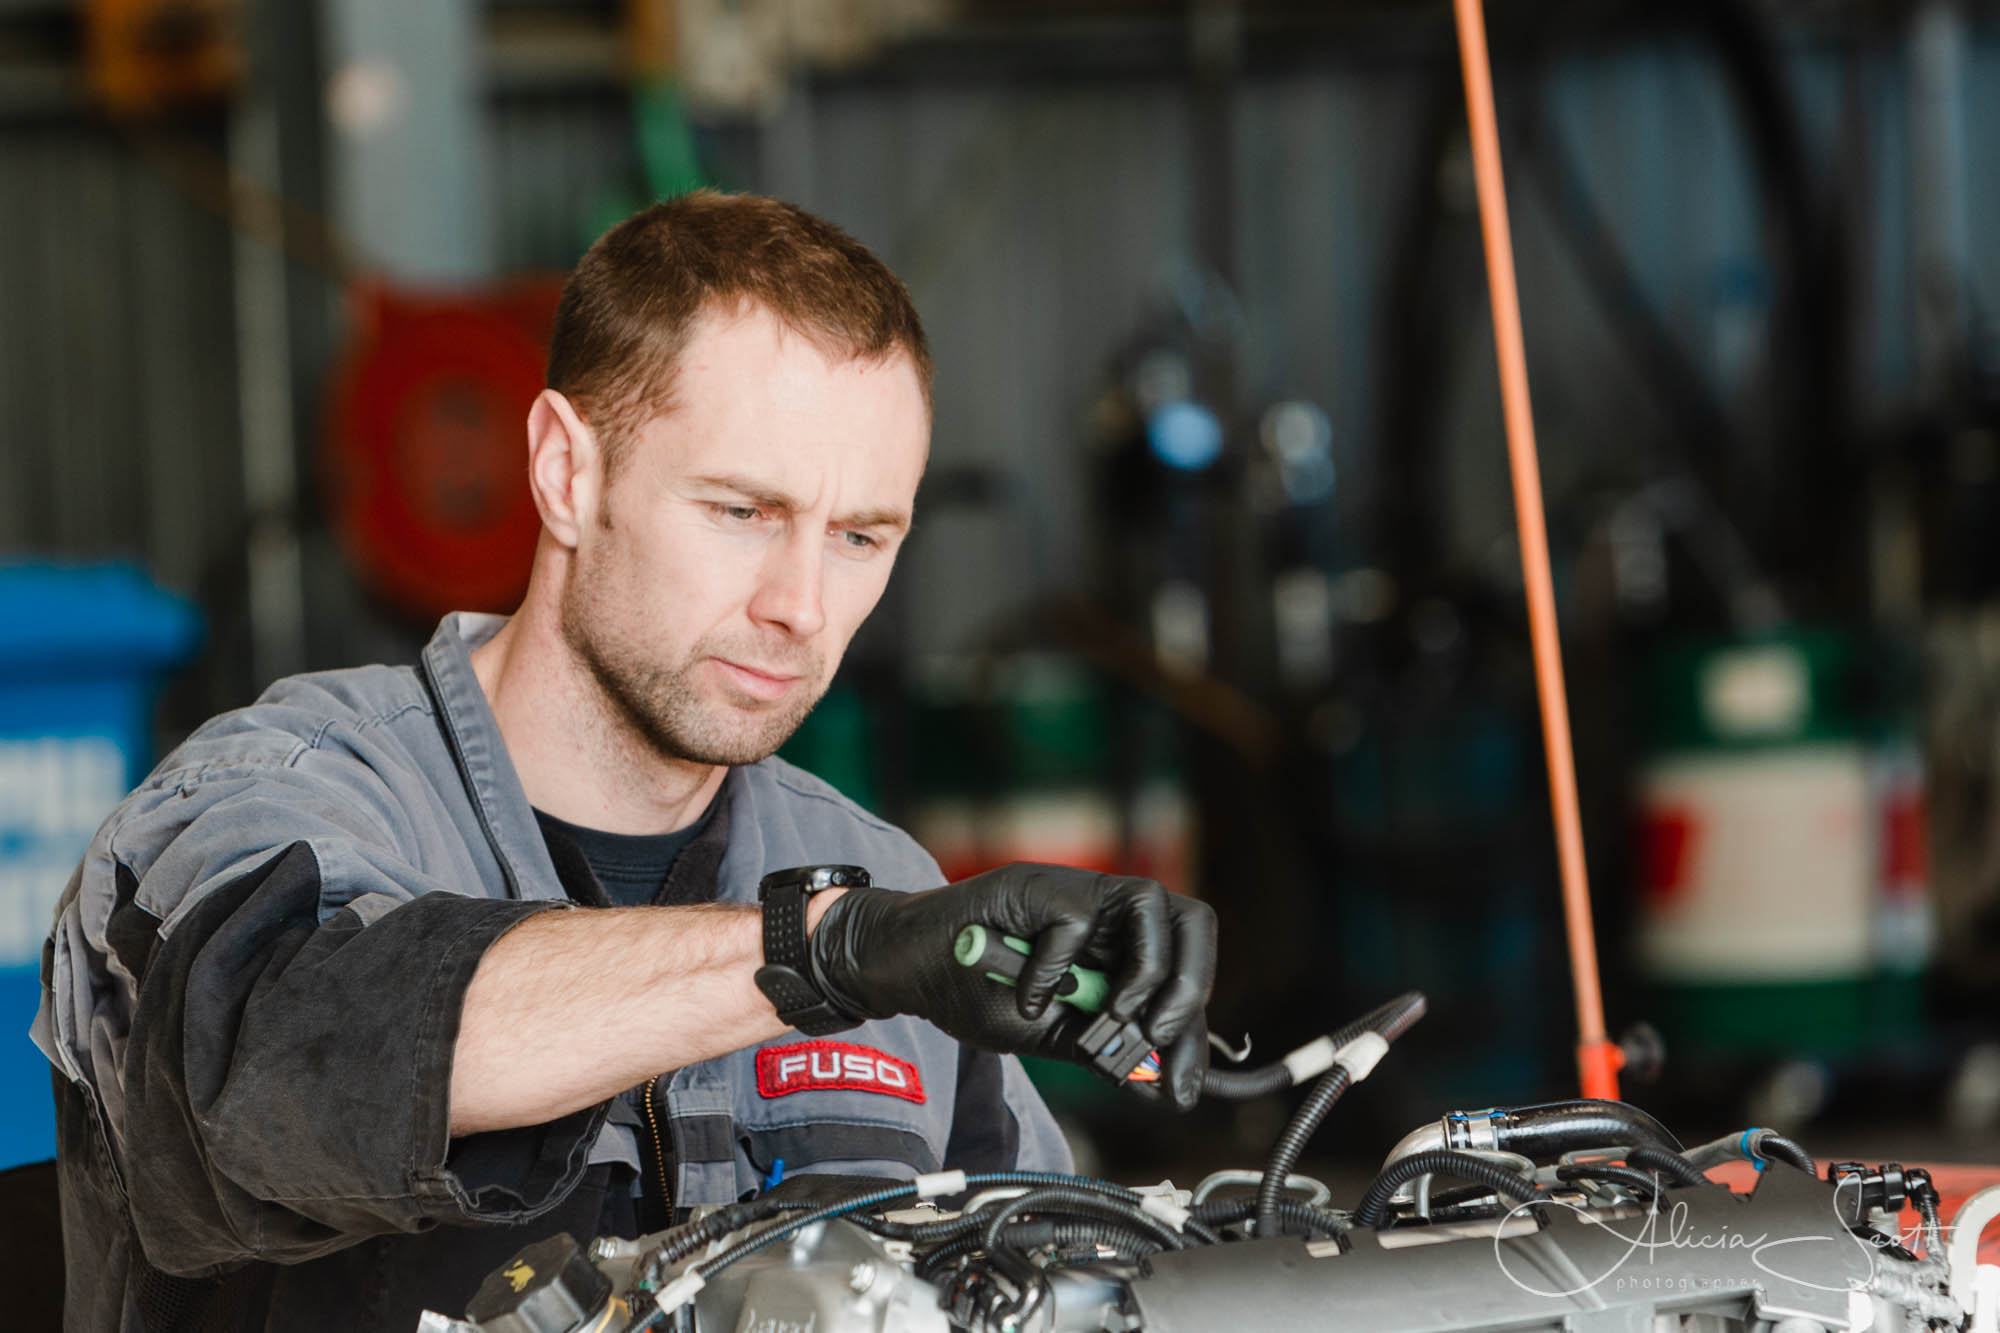 Image of a mechanic at work as part of business in action shots for DESL taken by Alicia Scott Petone Photographer